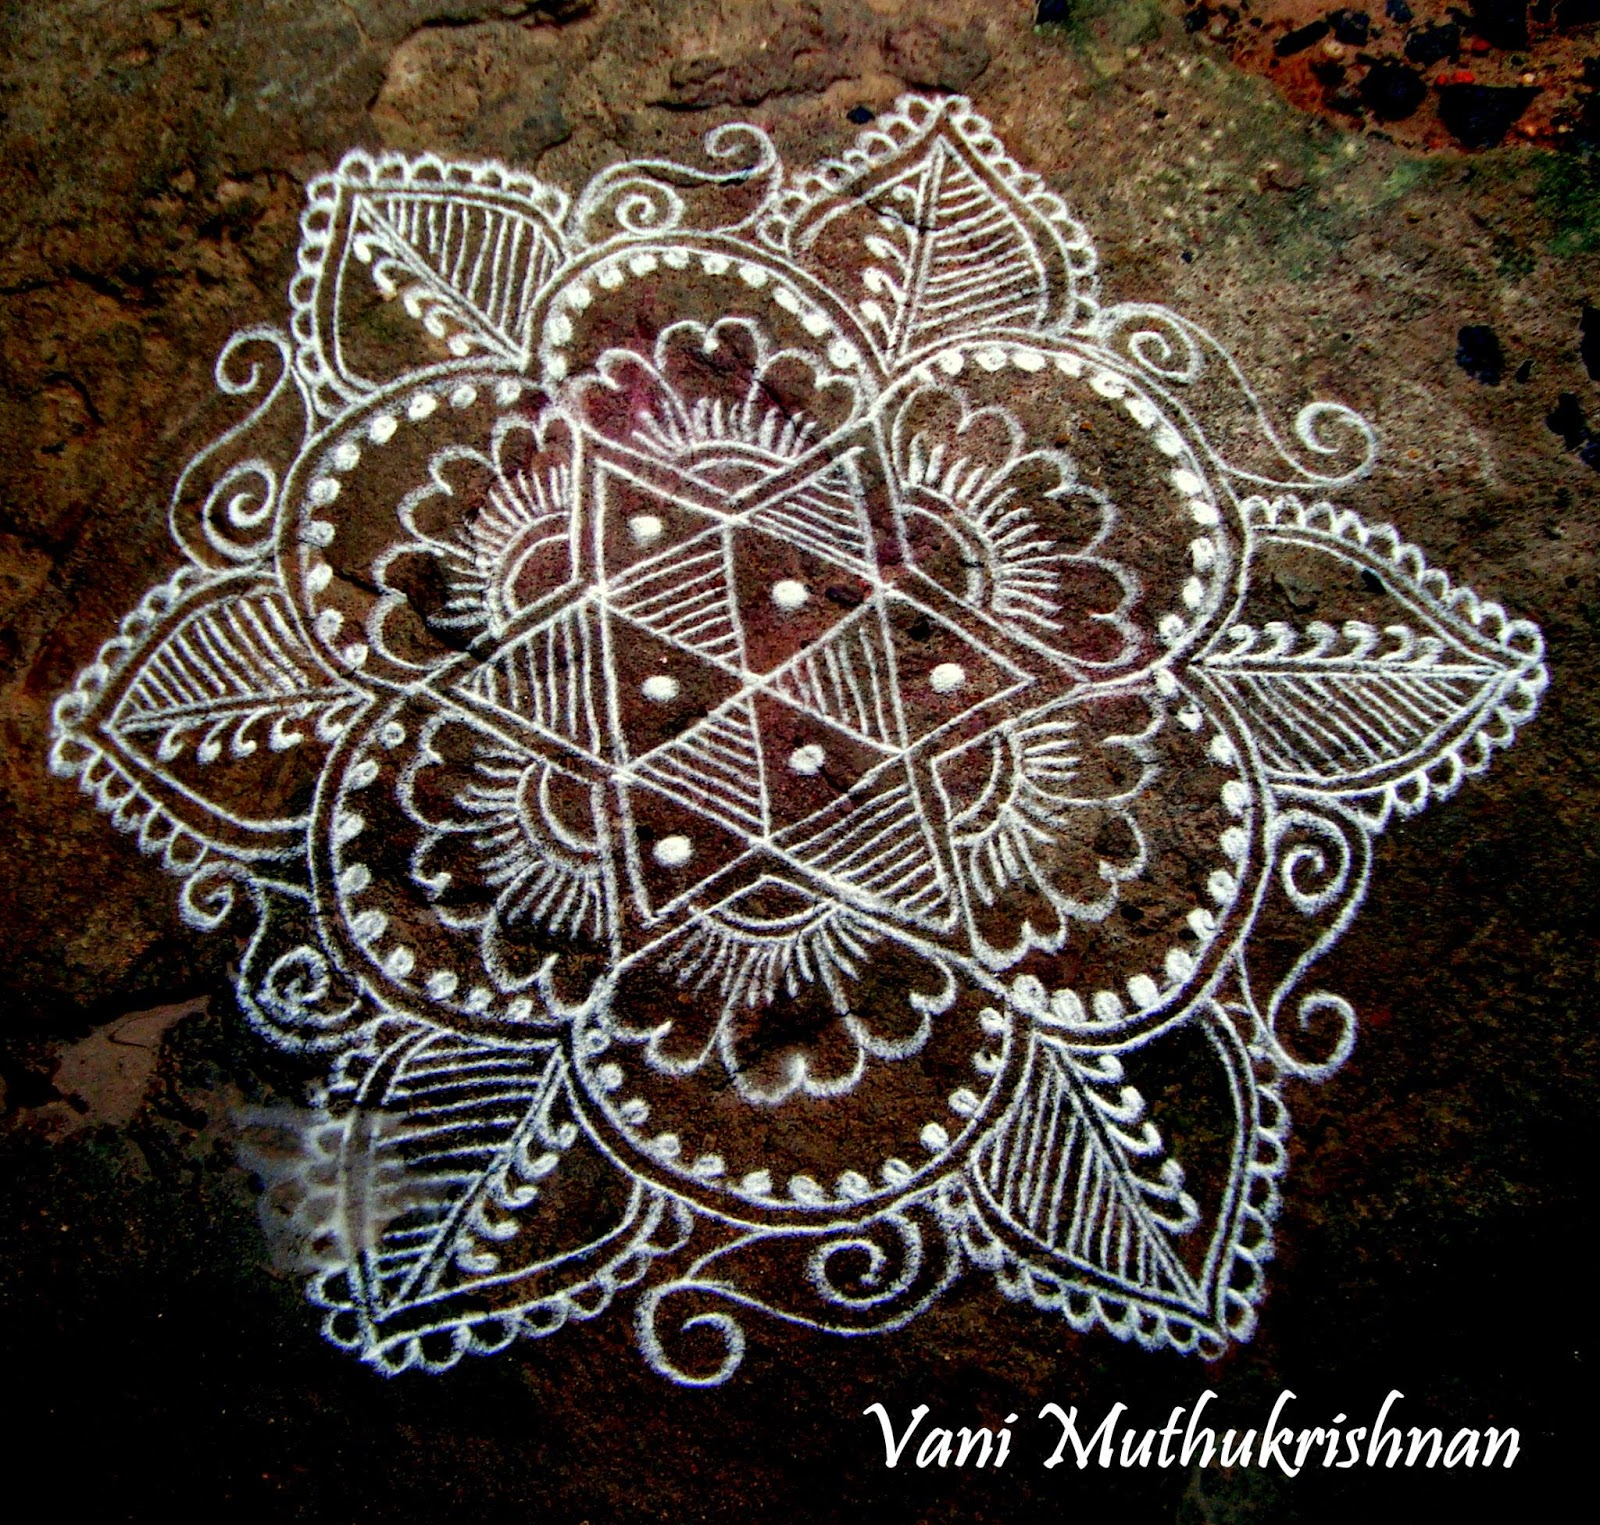 Http Www Rangolidesigns Co In 2015 01 45 Kolam Designs For Festivals Html